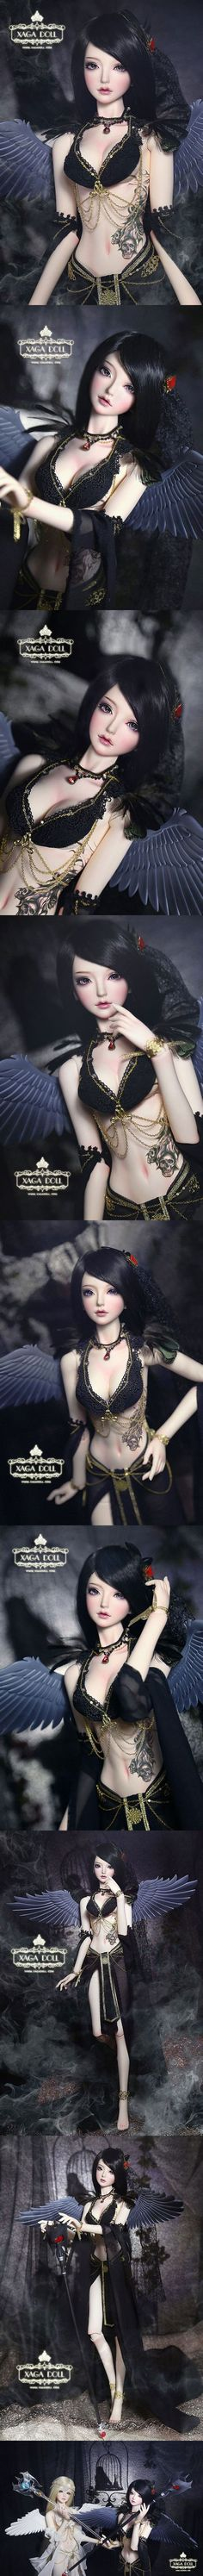 BJD Limited Item Black Angle Zenobia Girl 65cm Ball-Jointed Doll_58 ~65cm doll_XAGA DOLL-_DOLL_Ball Jointed Dolls (BJD) company-Legenddoll